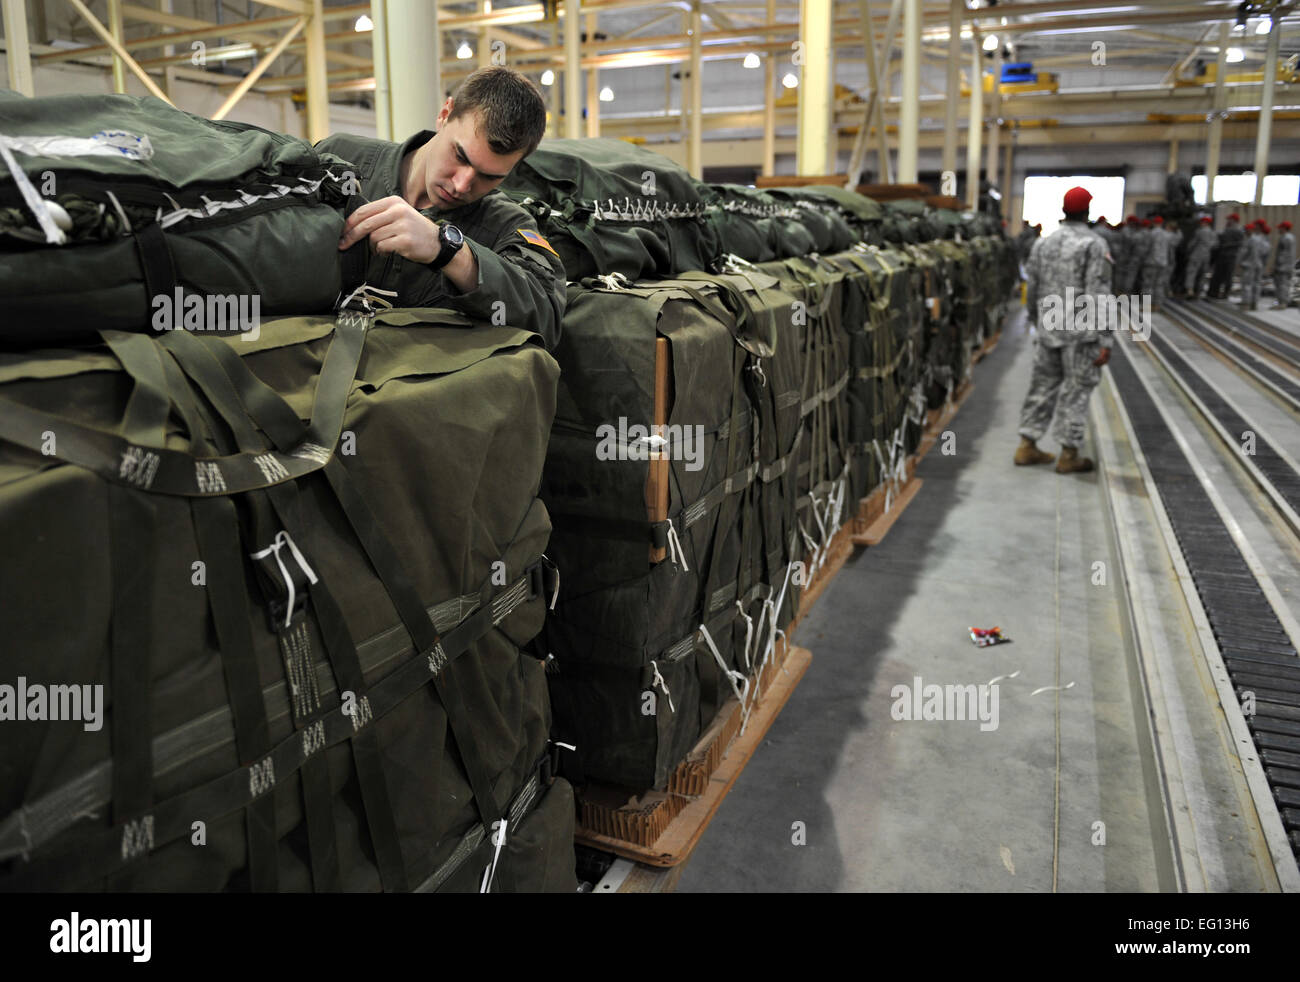 100117f2034c002 Senior Airman Matt Poad Conducts A Joint Airdrop Inspection  On Container Delivery Systems Jan 17